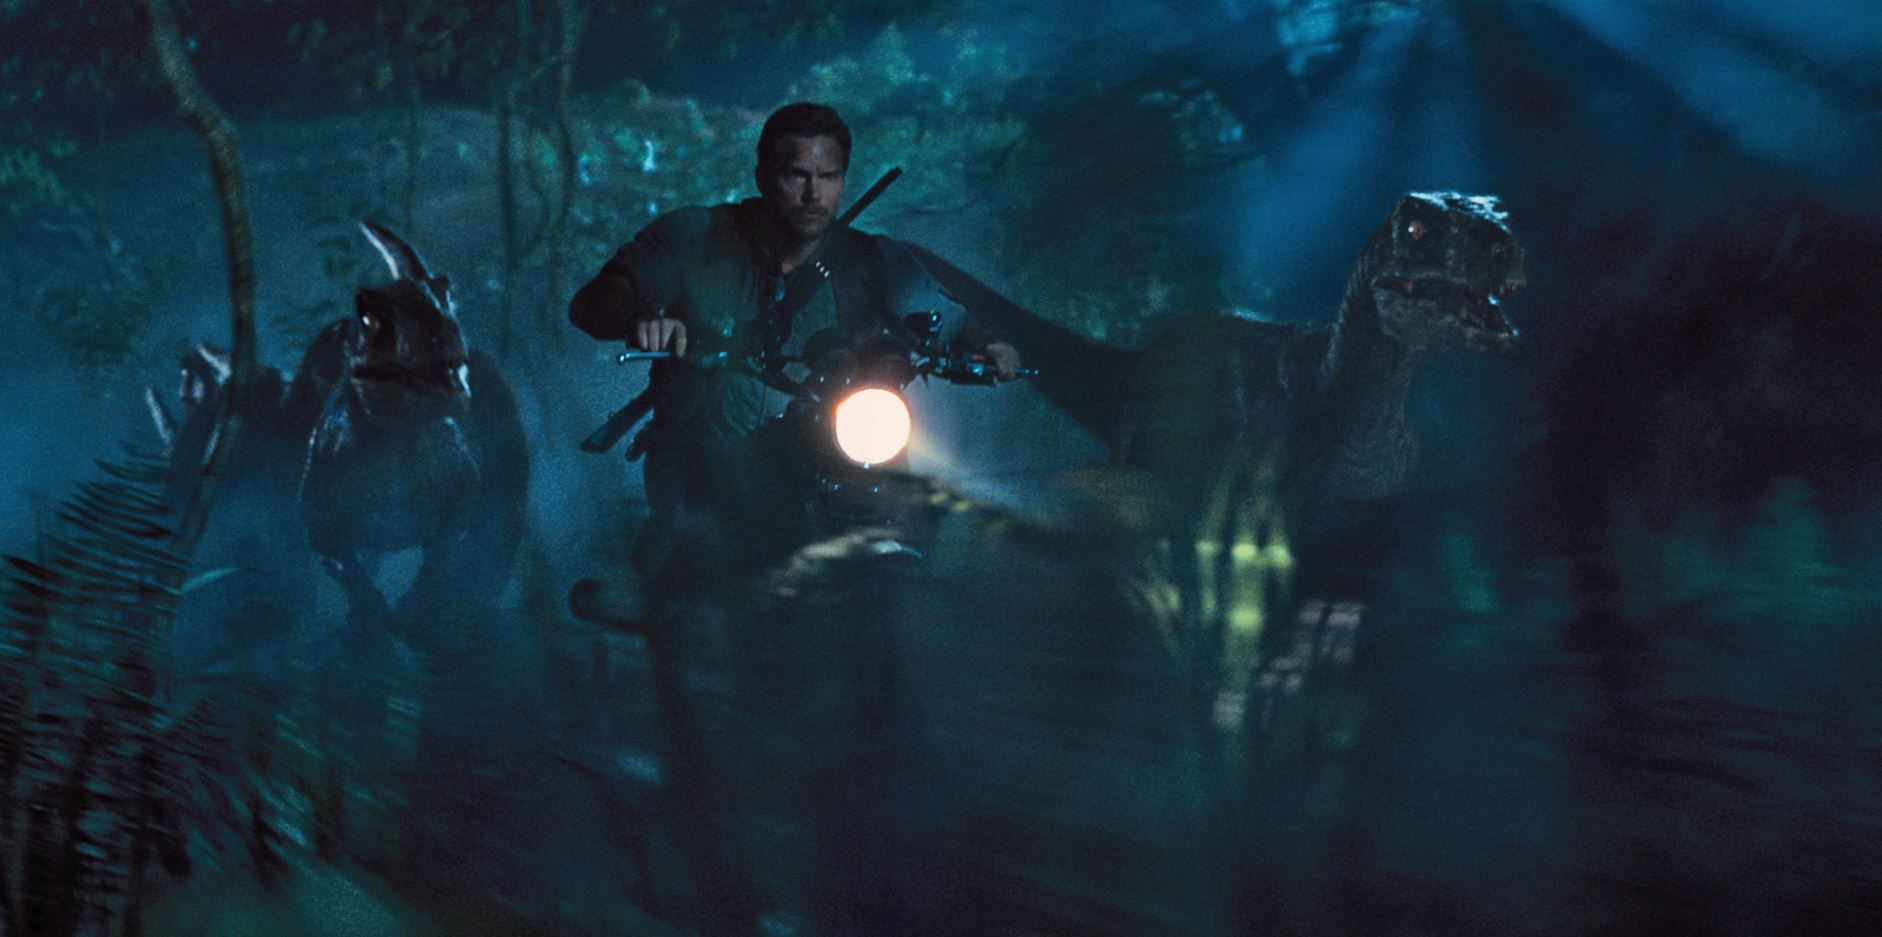 Owen Grady (Chris Pratt) chasing raptors - Jurassic World Review